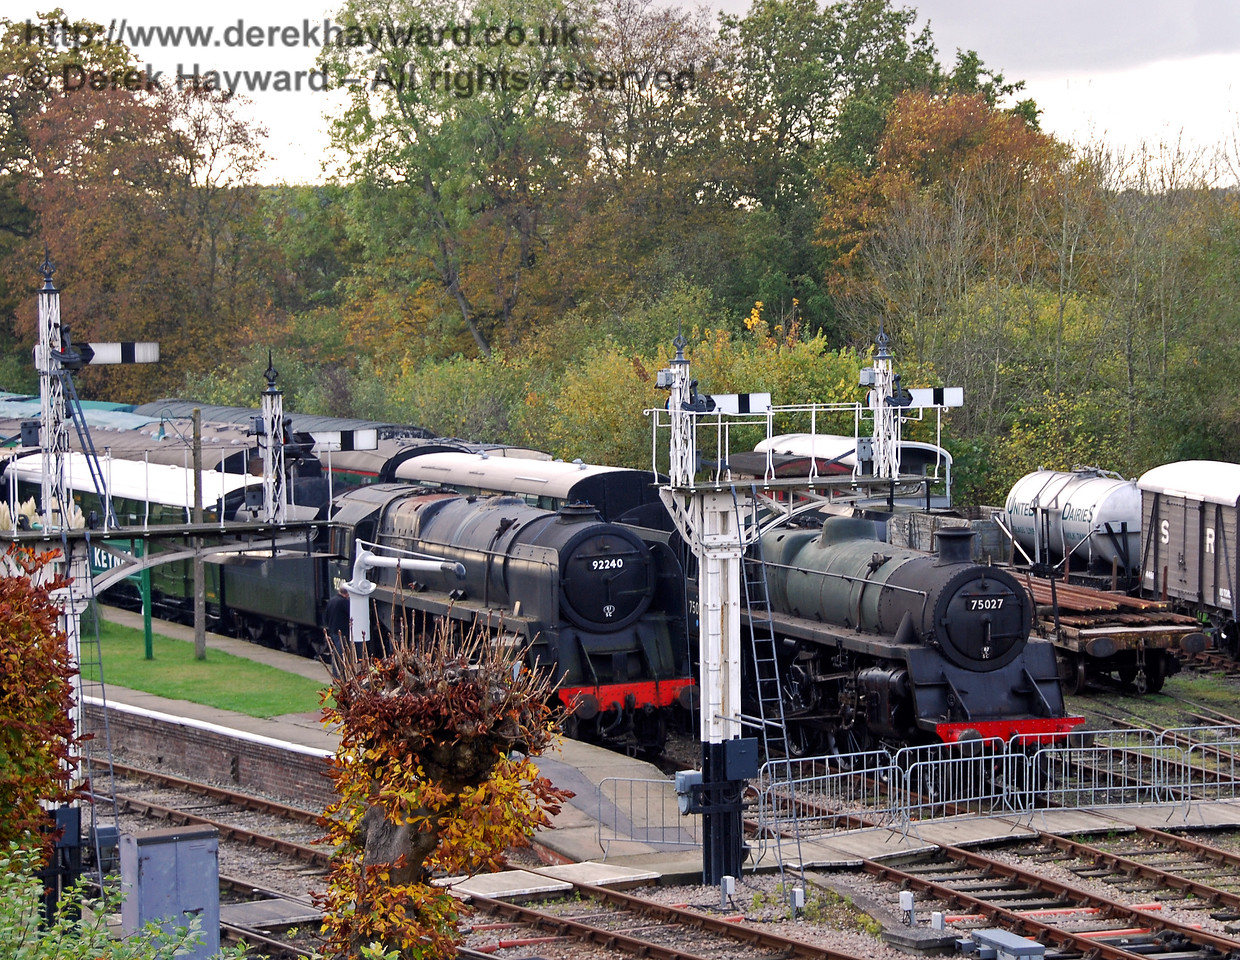 92240 and 75027 on display at Horsted Keynes.  23.10.2009